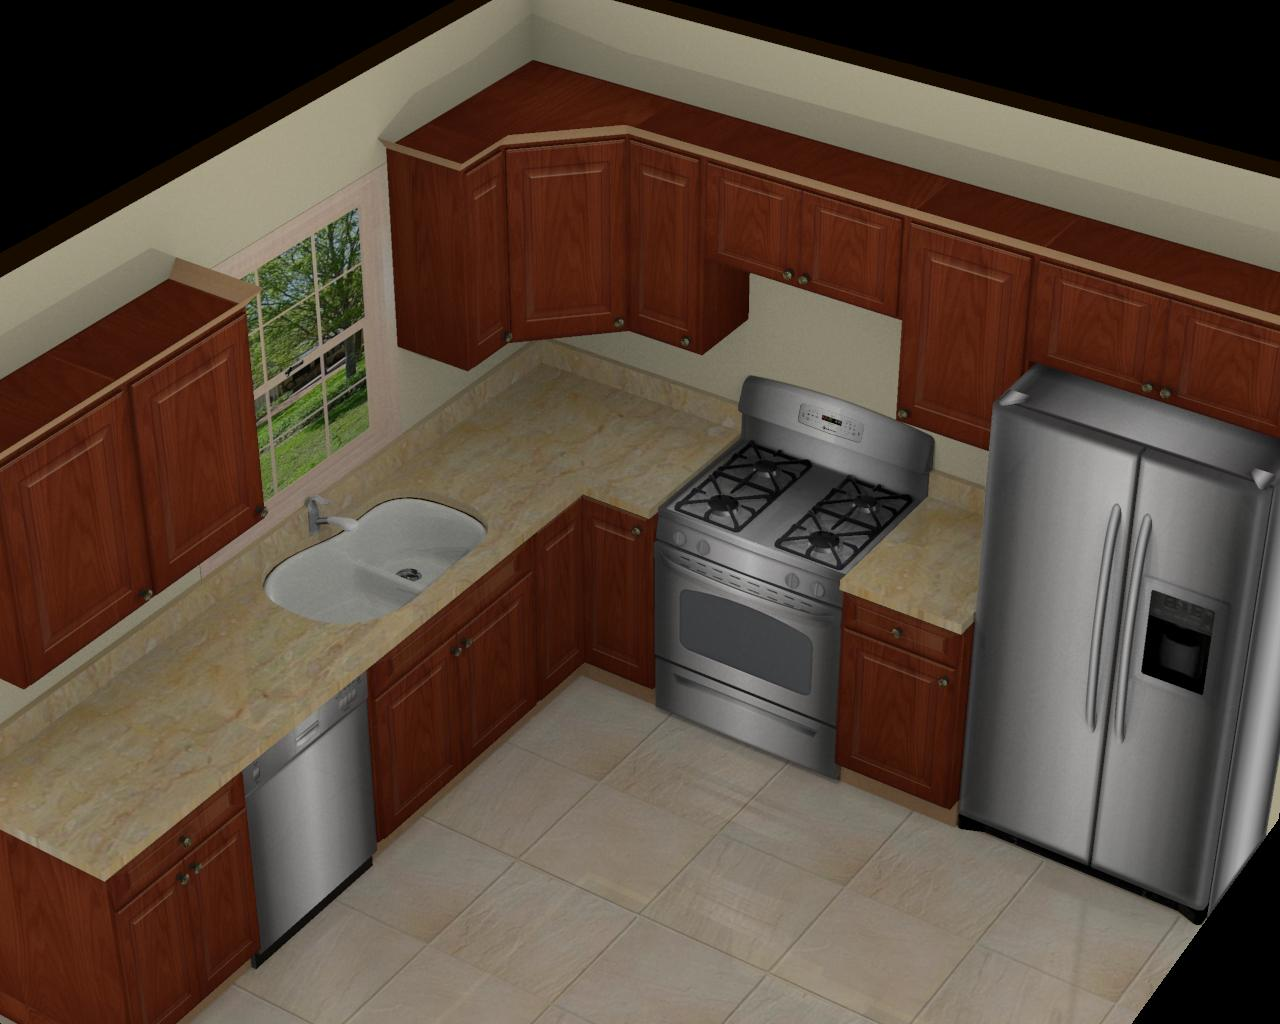 Foundation dezin decor 3d kitchen model design for Kitchen plans and designs